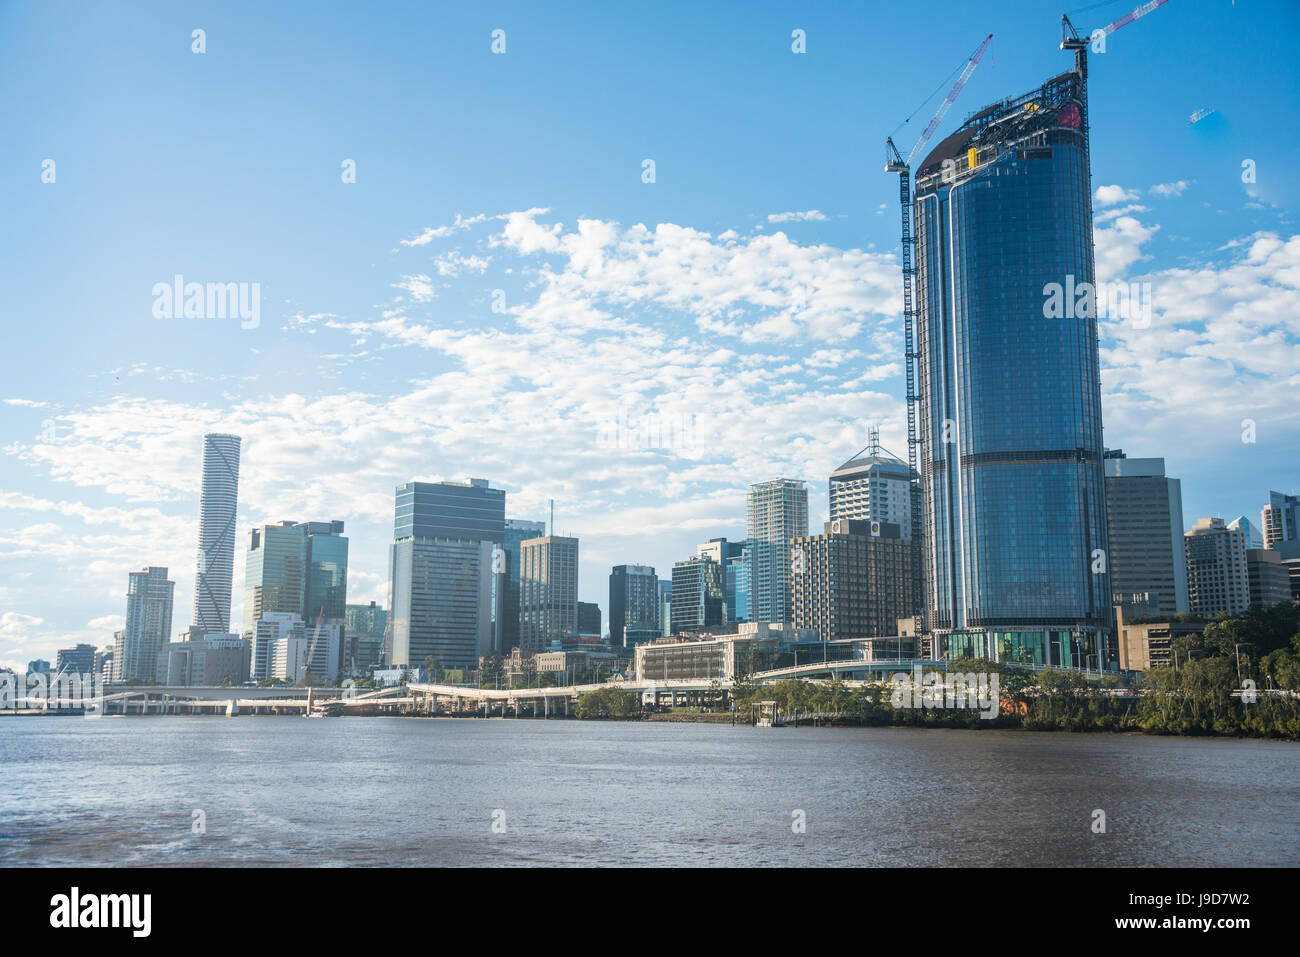 Le quartier central des affaires de Brisbane, Queensland, Australie, Pacifique Banque D'Images